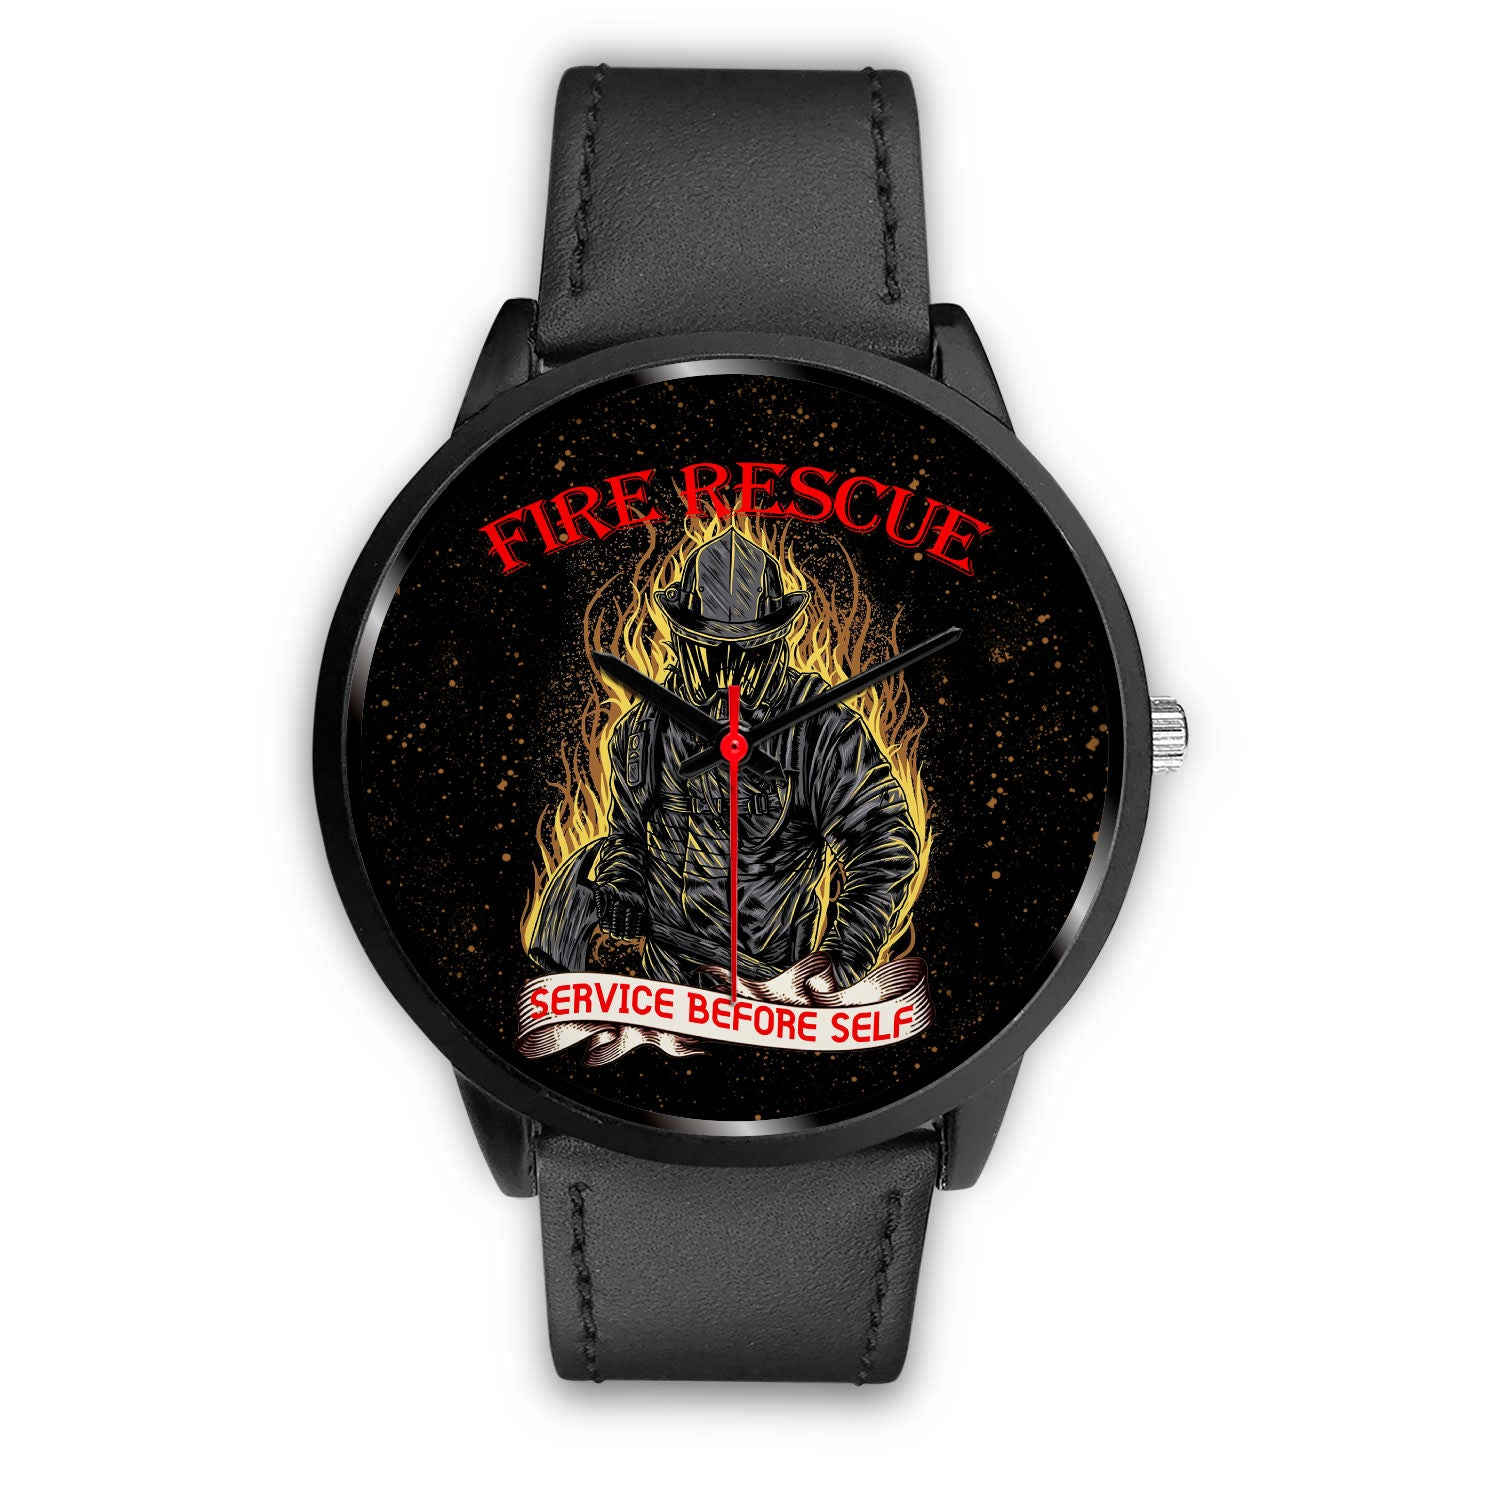 VIRA BLACK REAL LEATHER WATCH FOR FIREFIGHTER LOVERS